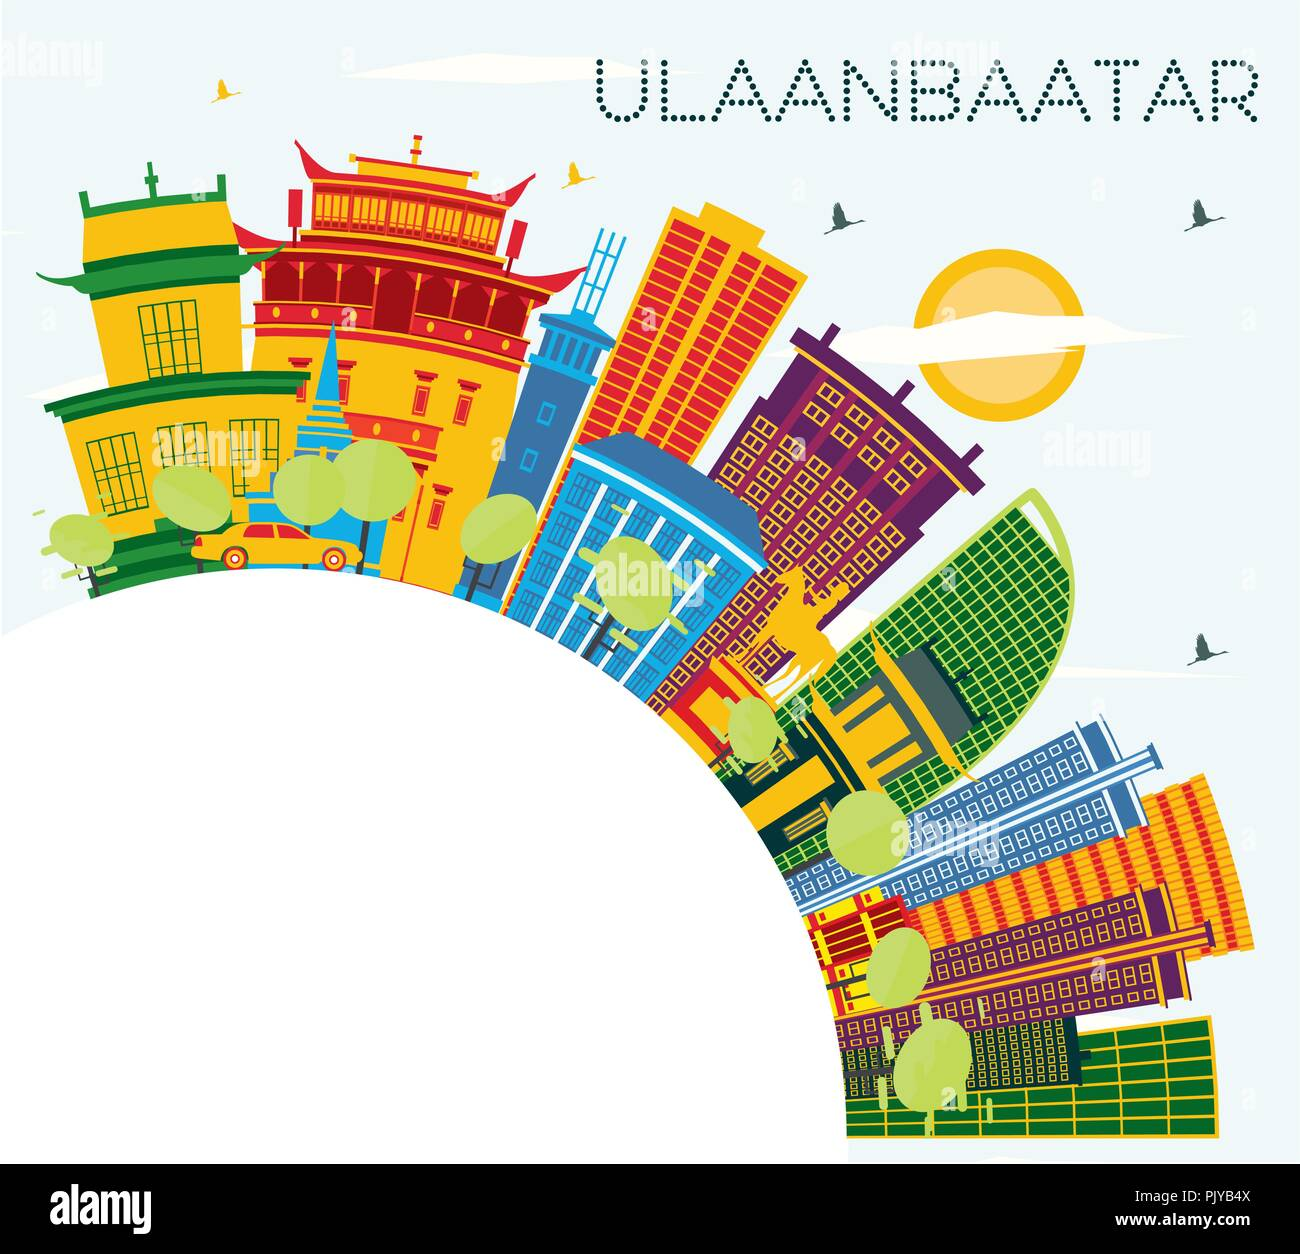 Ulaanbaatar Mongolia City Skyline with Color Buildings, Blue Sky and Copy Space. Vector Illustration. - Stock Vector